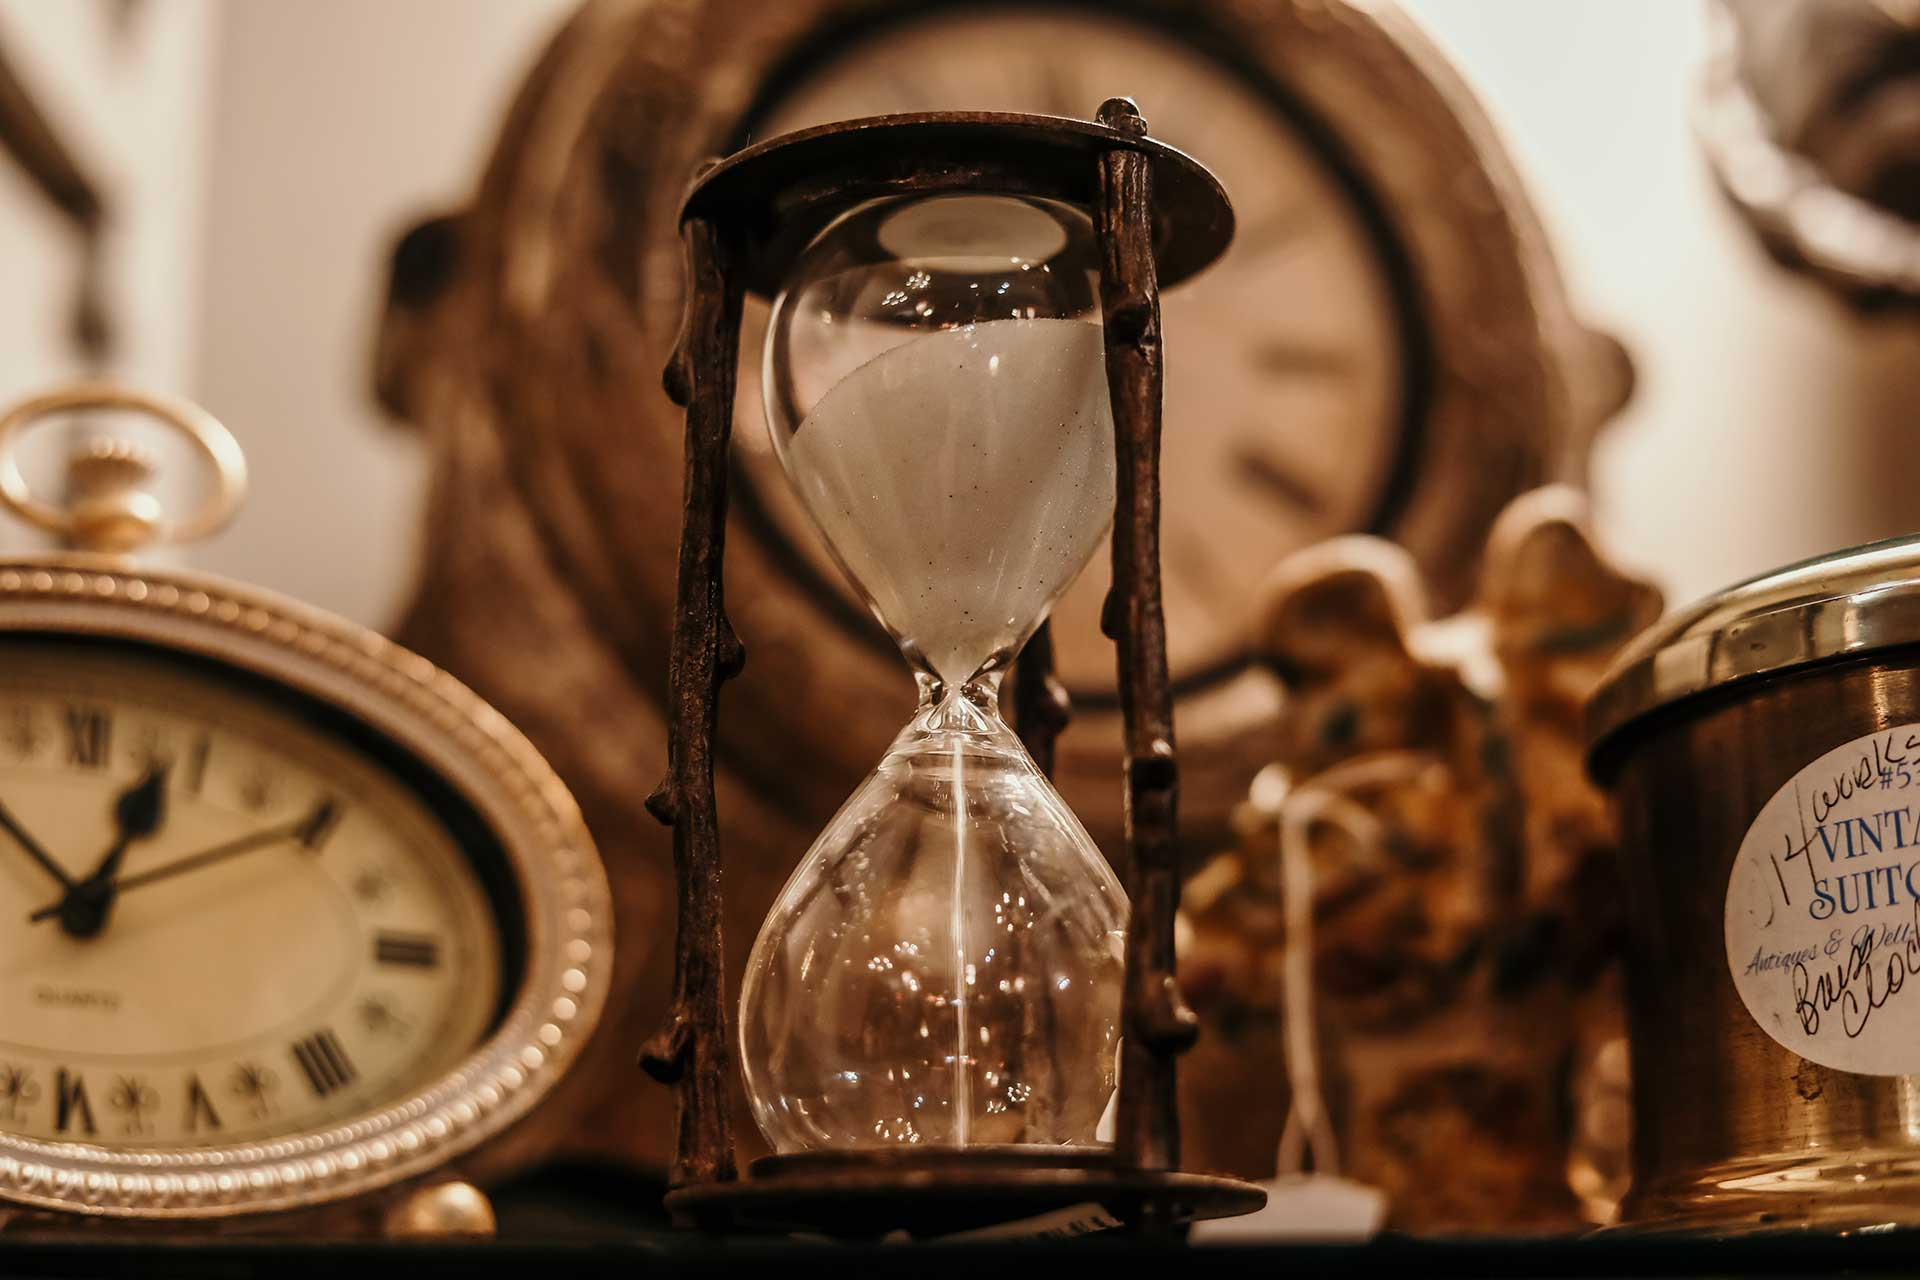 antique sand hour glass with vintage clocks